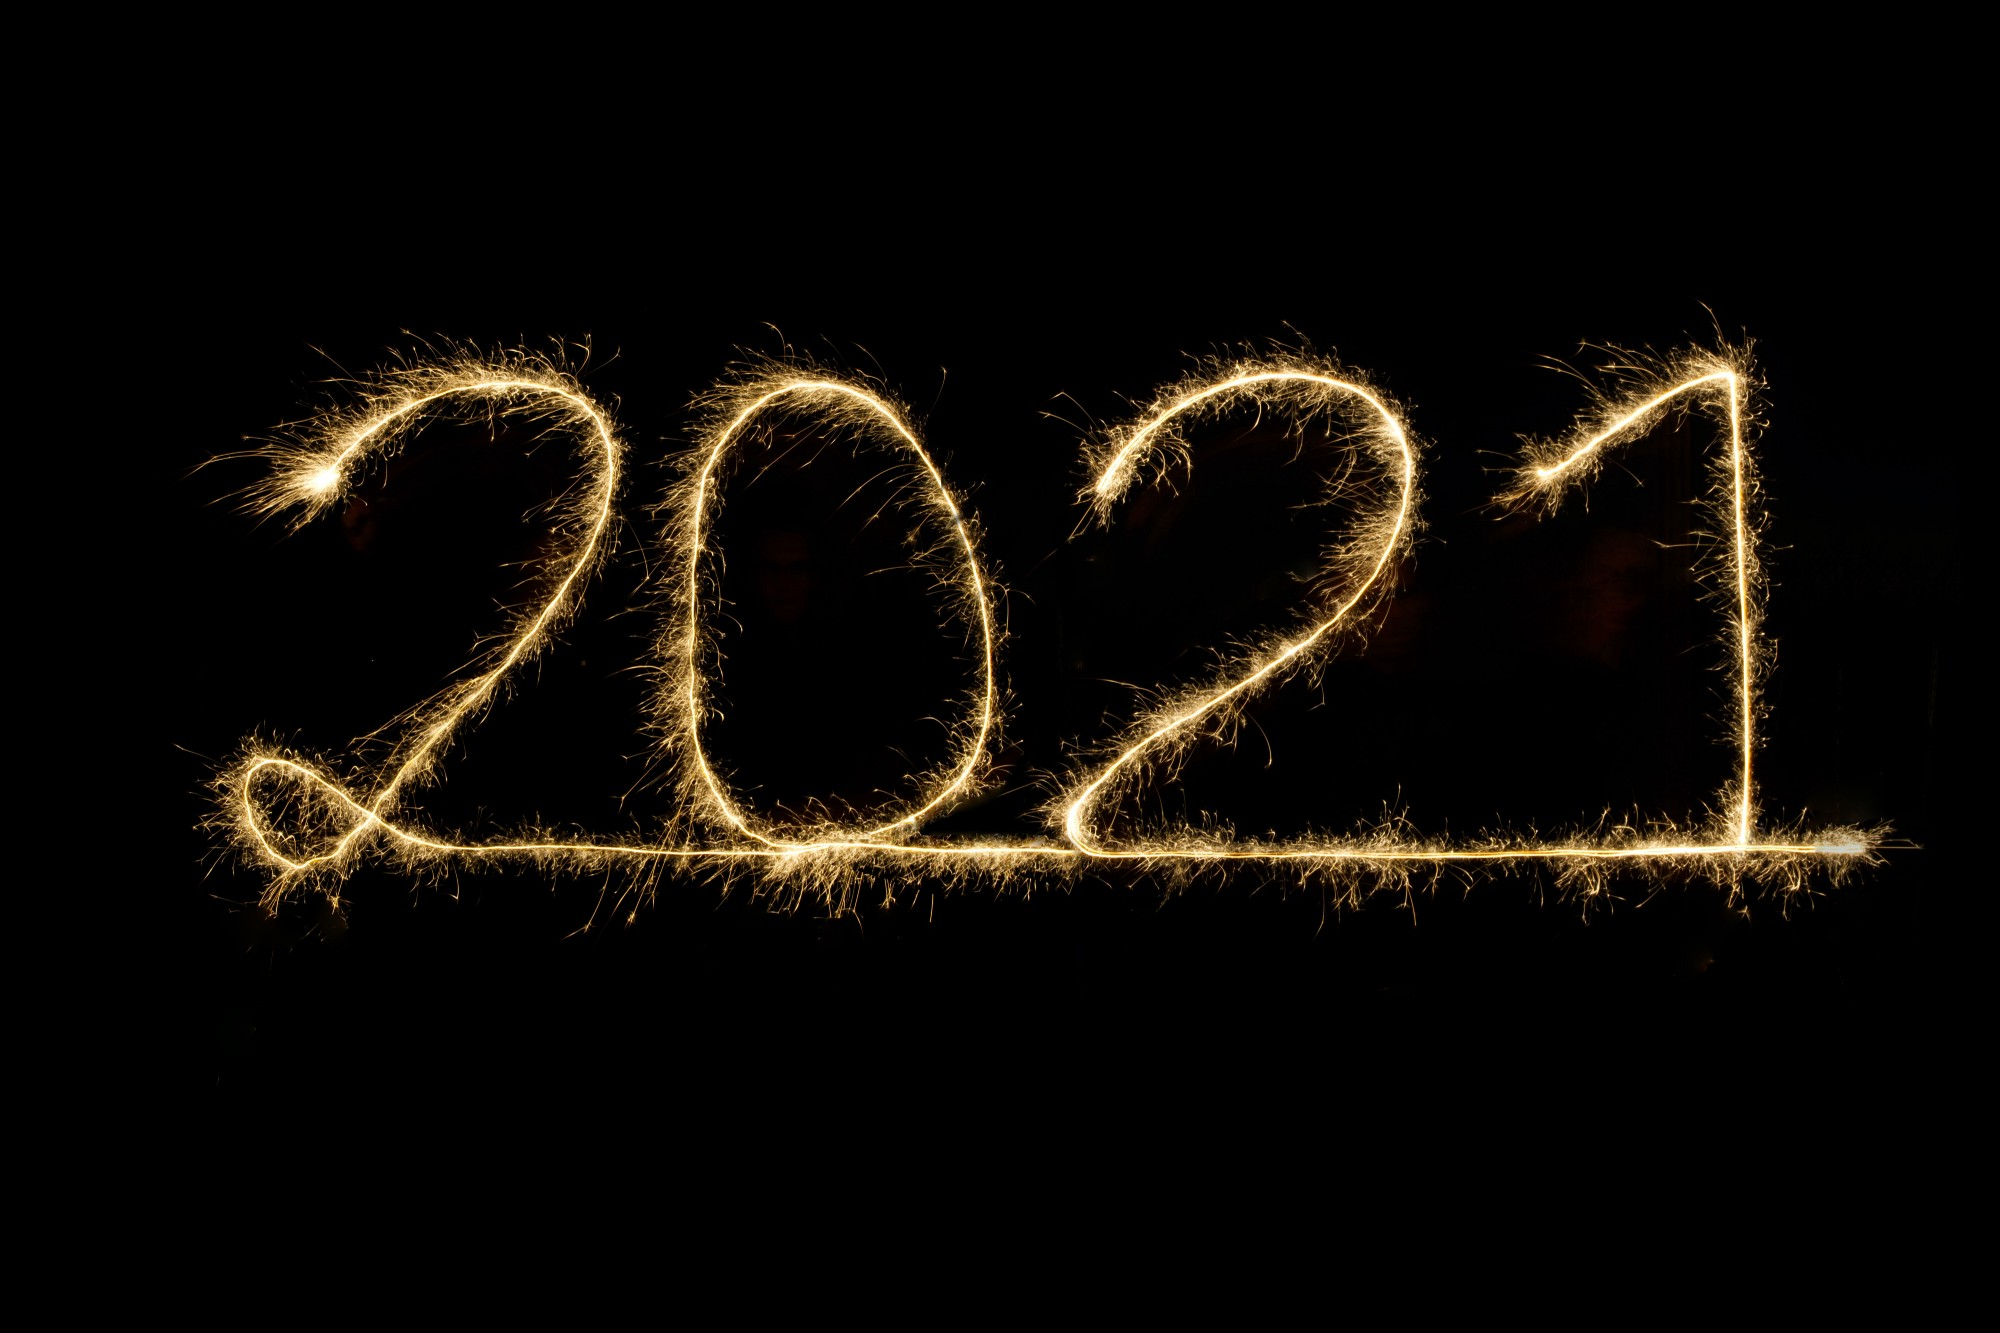 Roman numerals 2 0 2 1 written in gold sparkler light